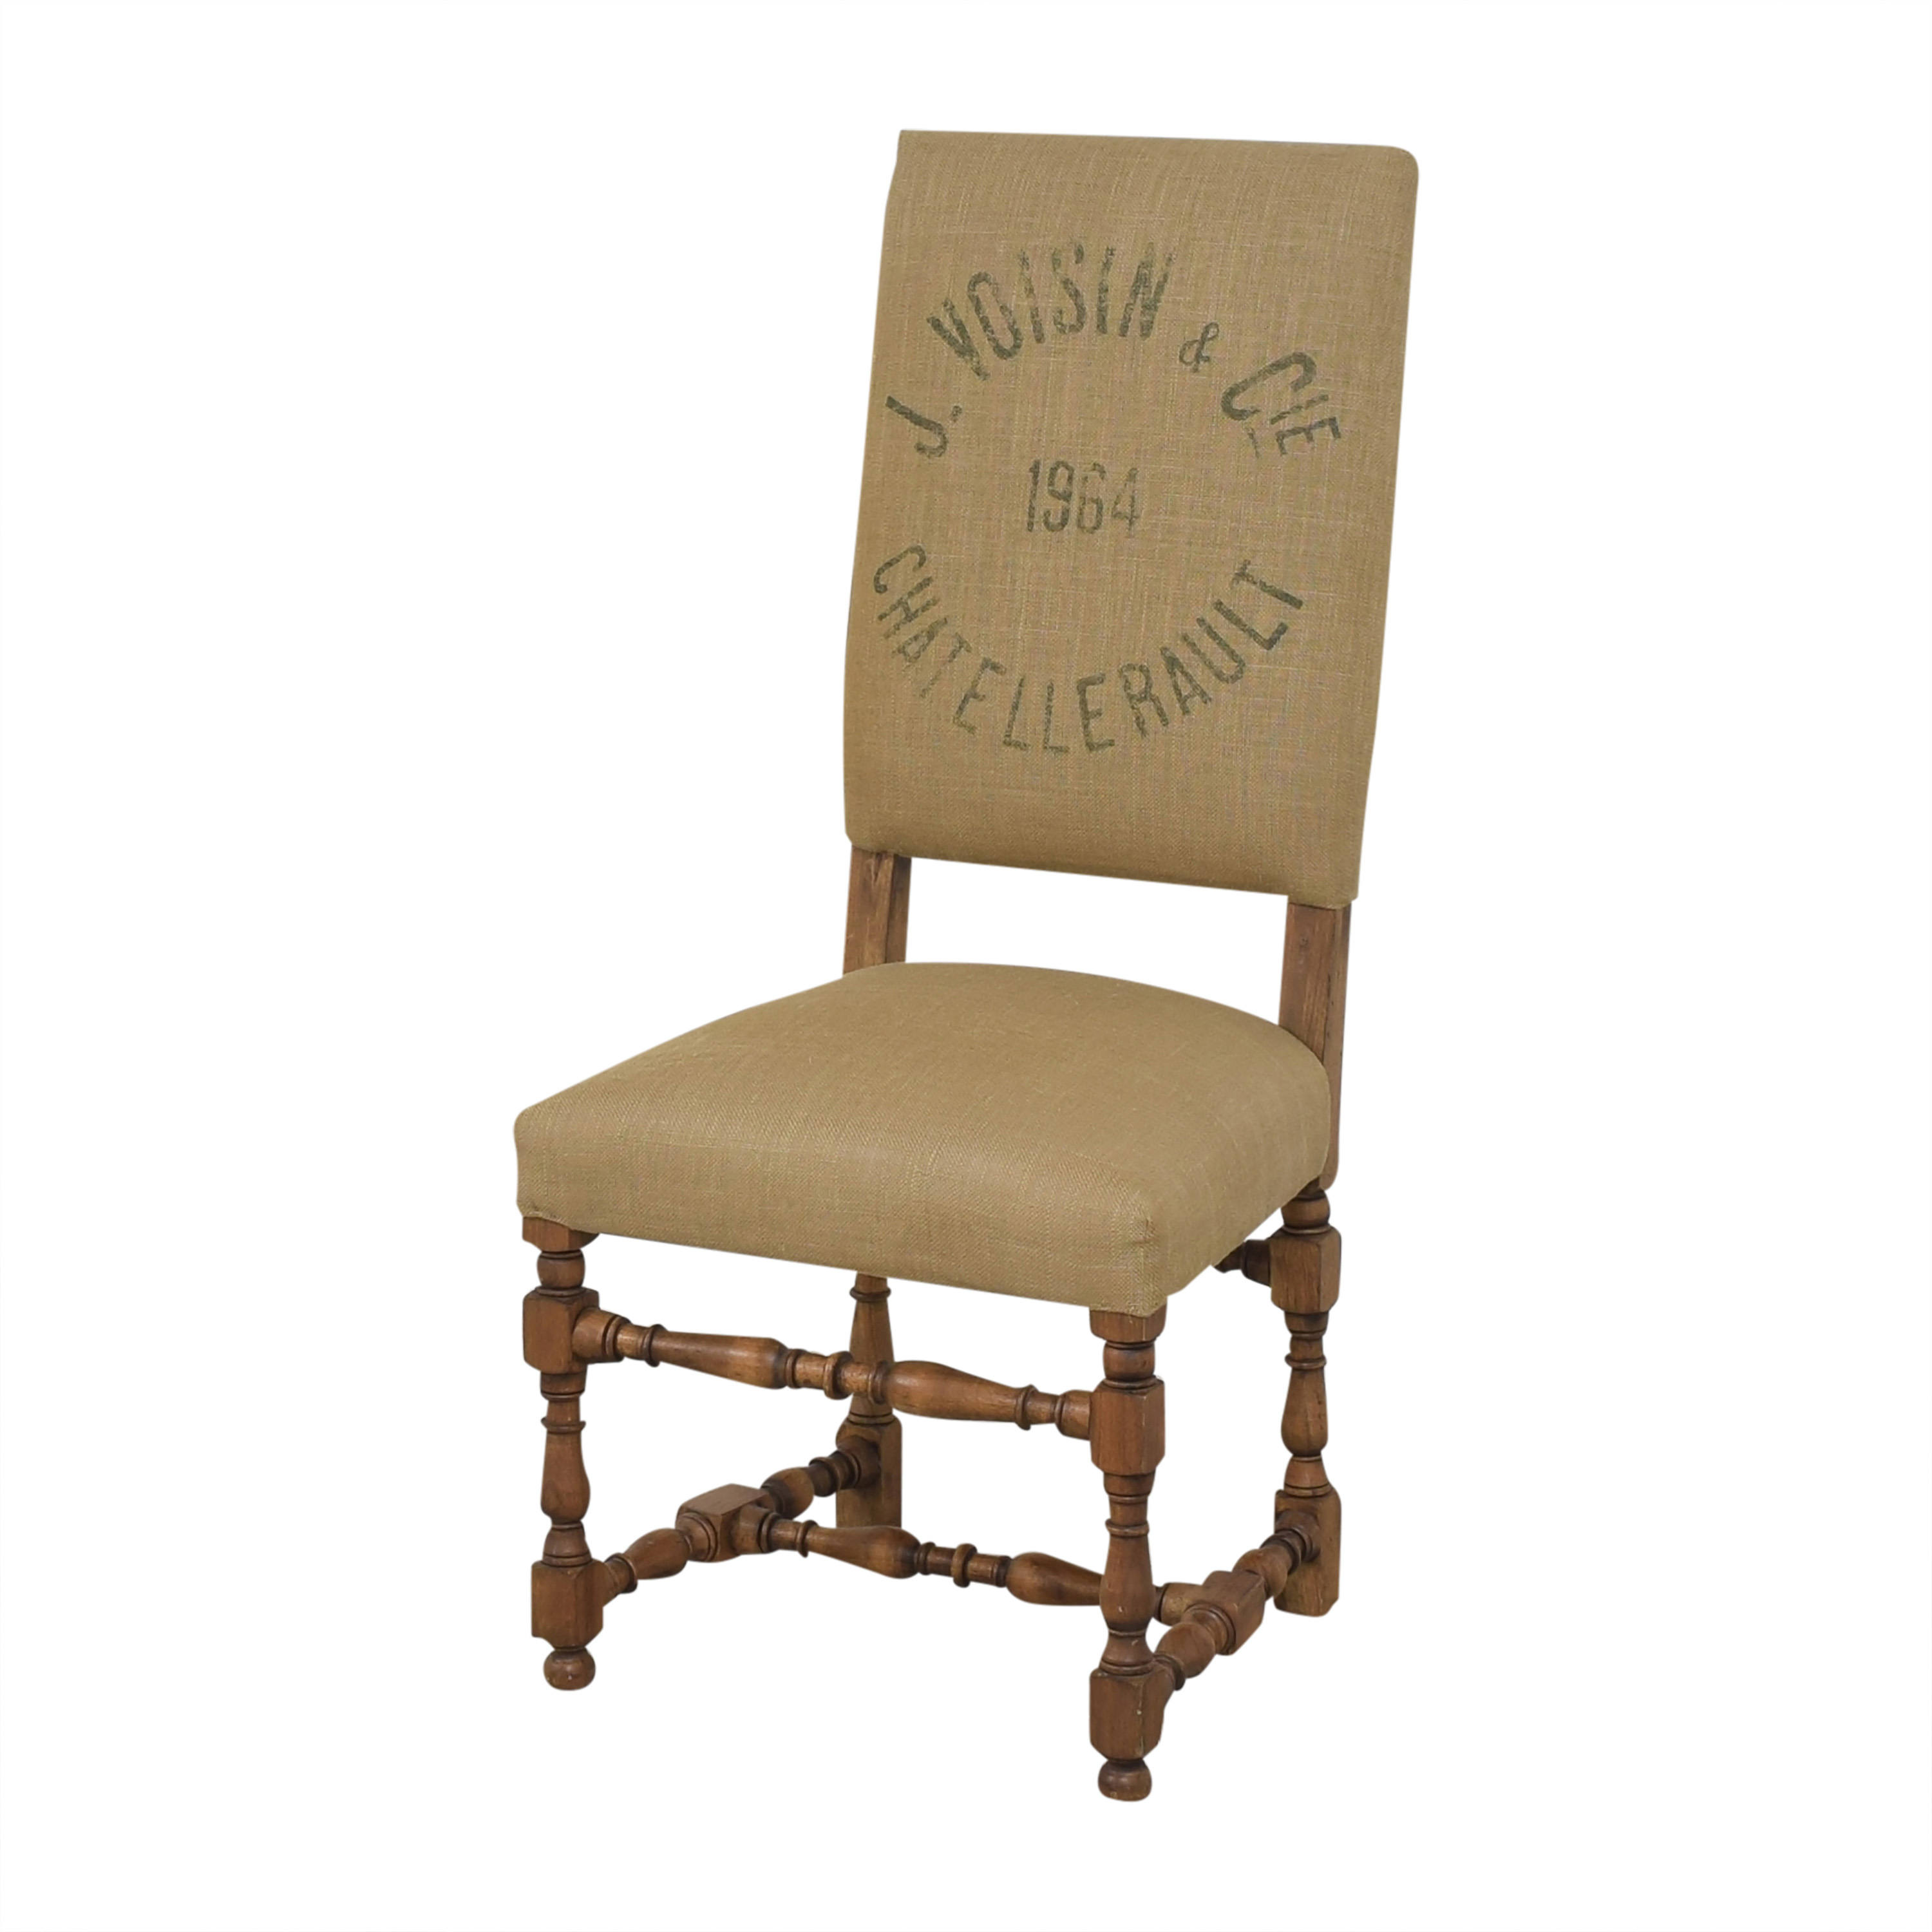 Restoration Hardware Restoration Hardware 1890 English Baroque Side Chair used